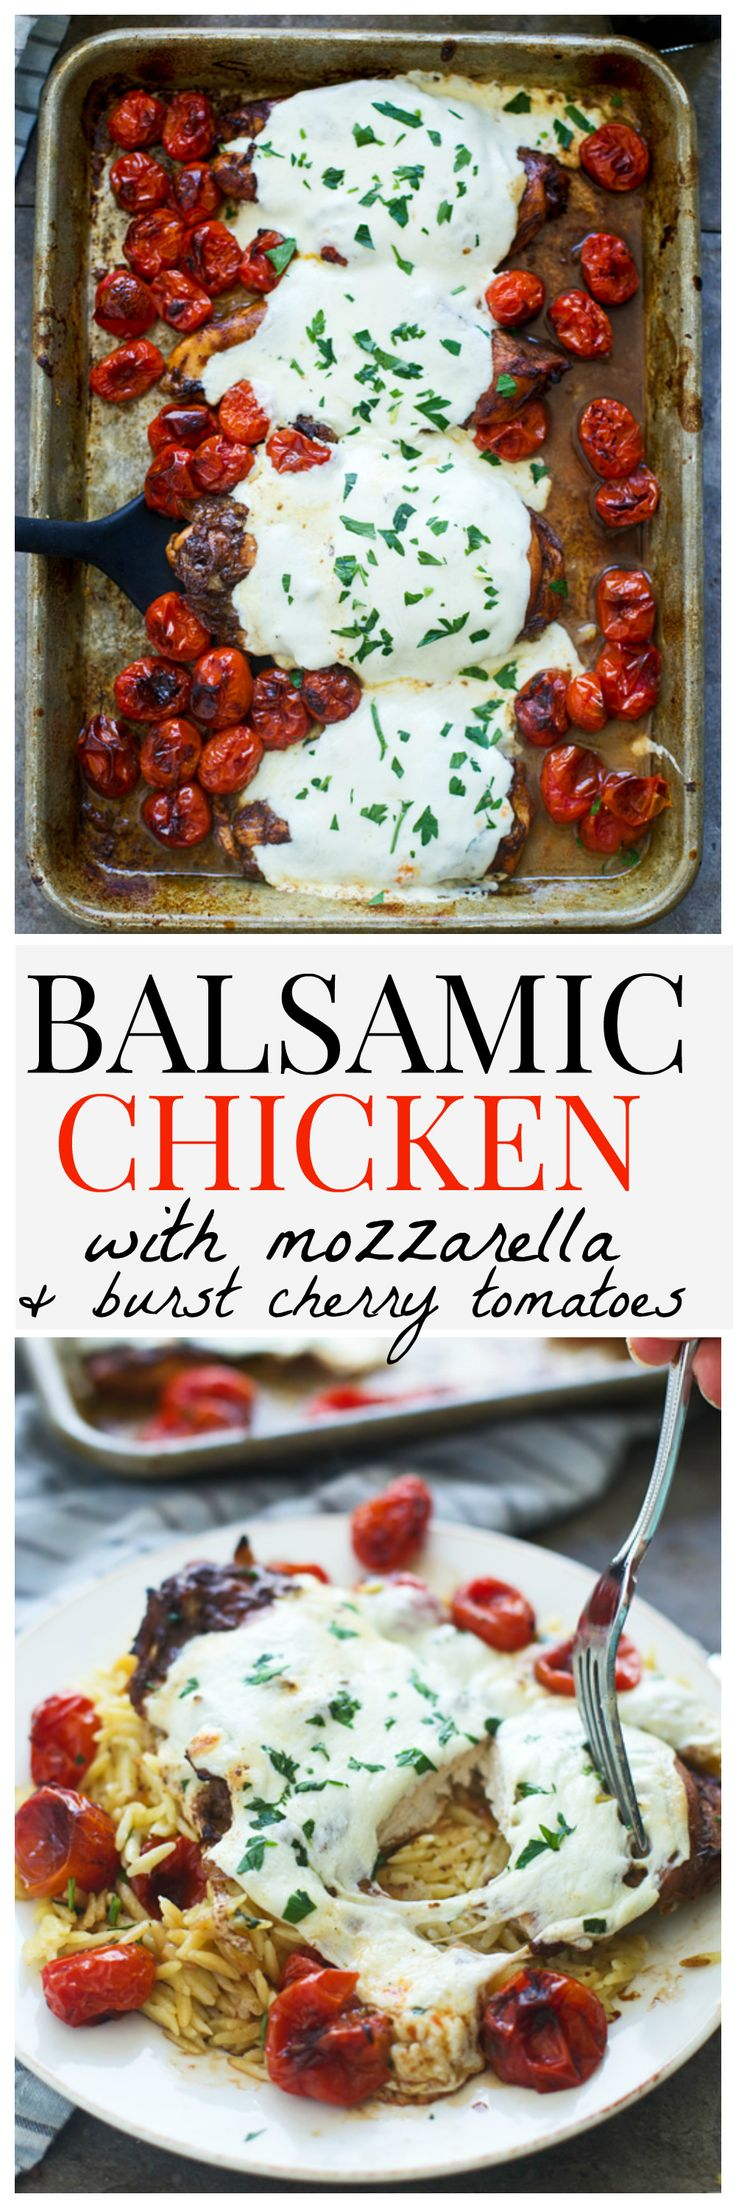 Easy dinners are the name of my game as of late, and this Balsamic Chicken with Mozzarella and Burst Cherry Tomatoes just shot straight up to the top of my ever-growing list of favorites. In the game of easy dinners, it really doesn't get much simpler than this: throw a marinade of balsamic vinegar, Dijon, [...]